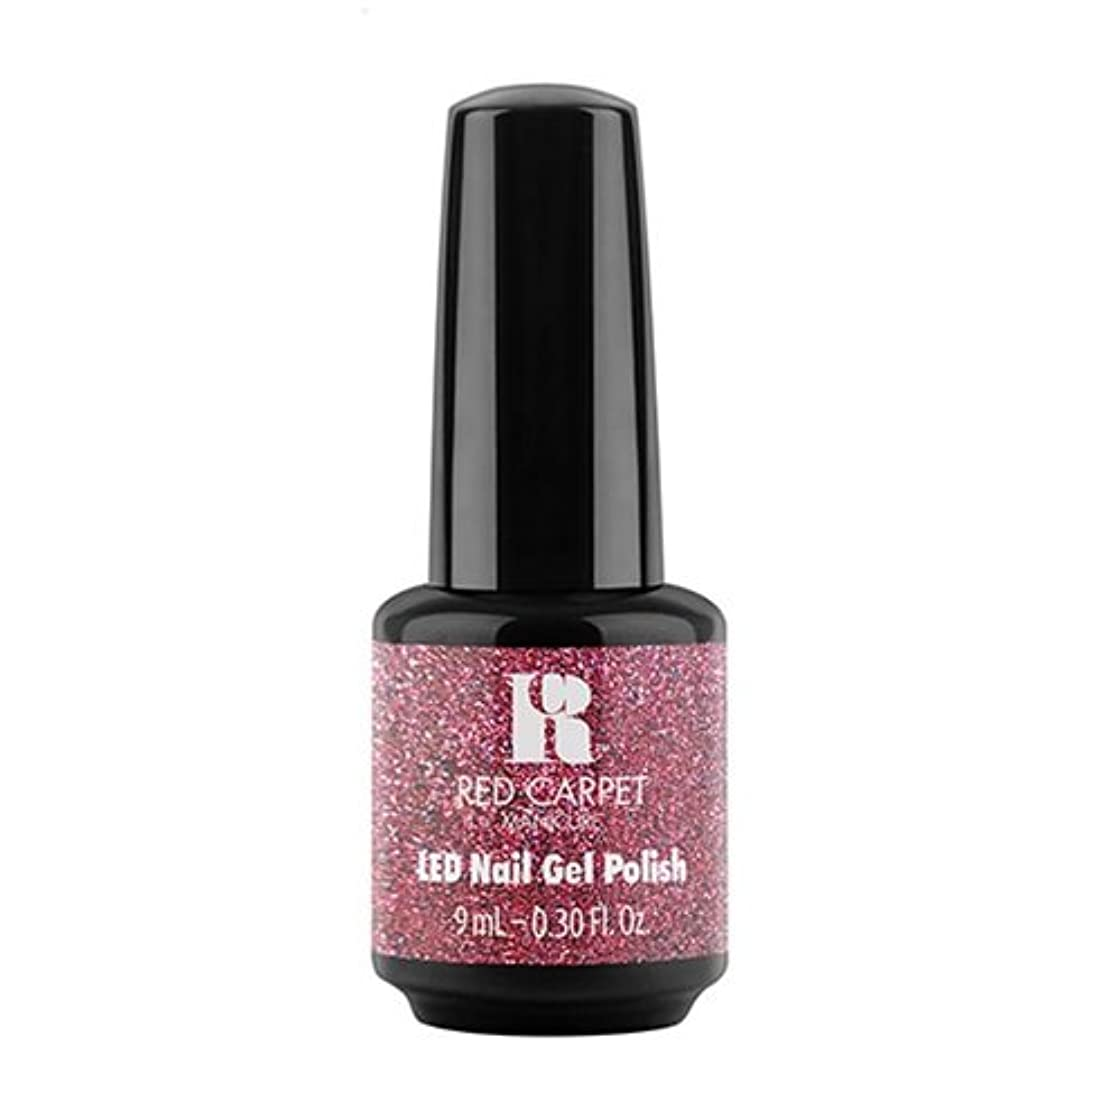 Red Carpet Manicure - LED Nail Gel Polish - Bombshell Babe - 0.3oz / 9ml